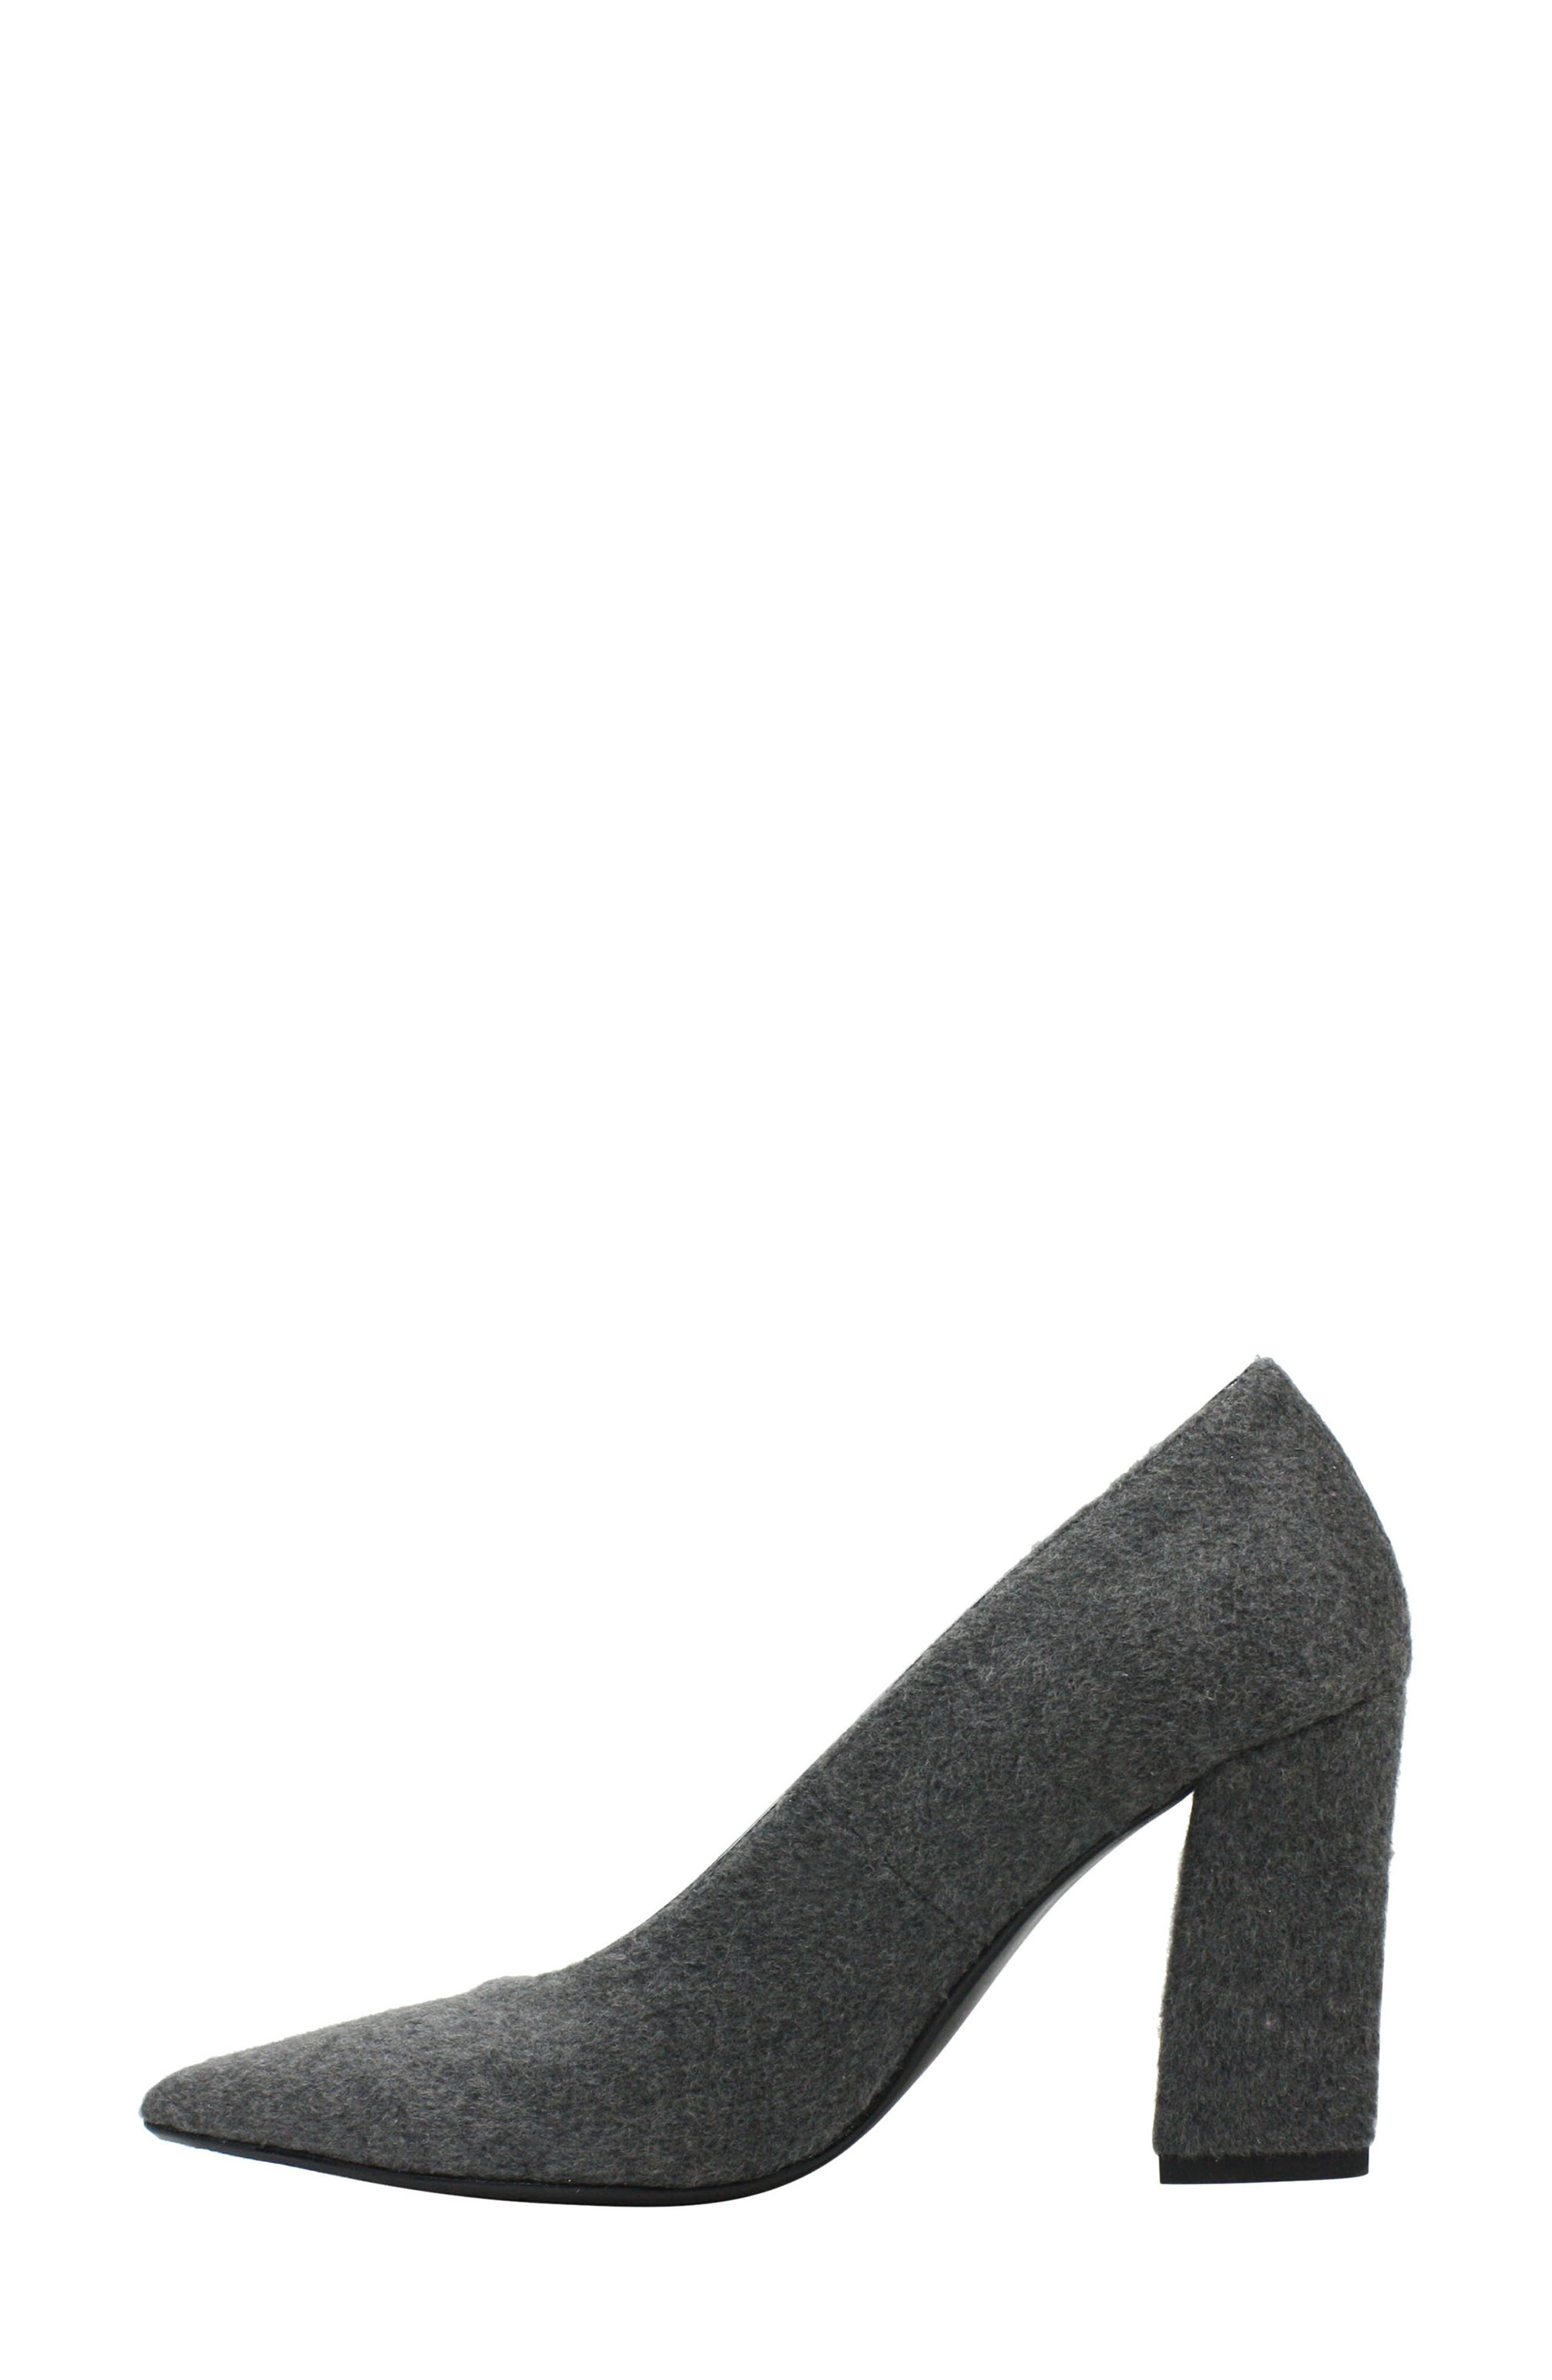 J. RENEÉ,                             Madisson Pointy Toe Pump,                             Alternate thumbnail 7, color,                             GREY FABRIC